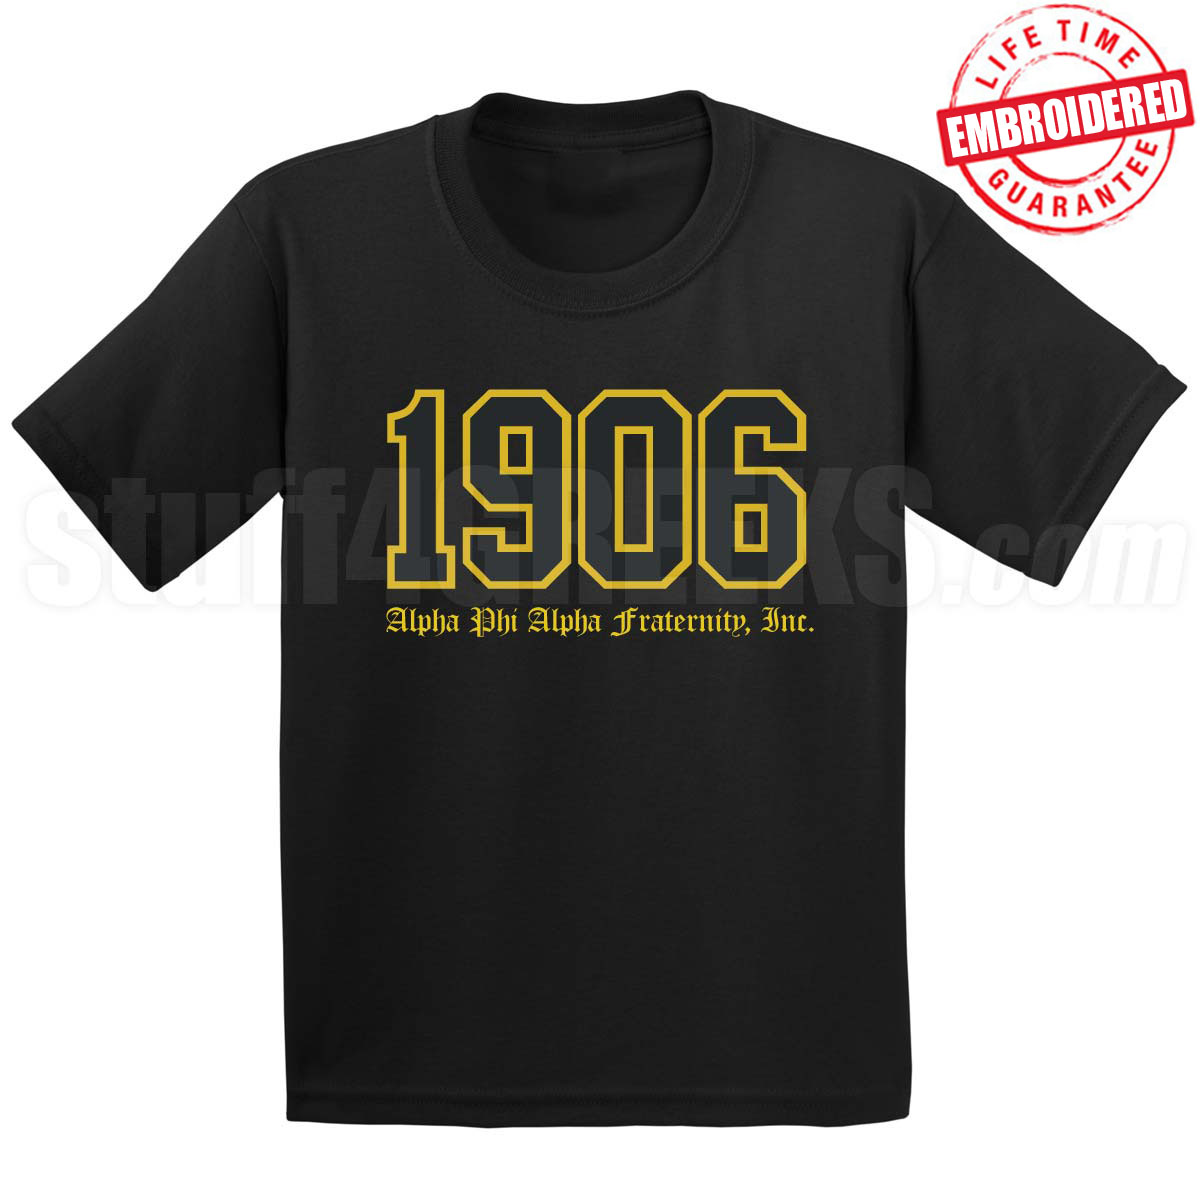 6dce16671e7 1906 Alpha Phi Alpha Old English - EMBROIDERED with Lifetime ...